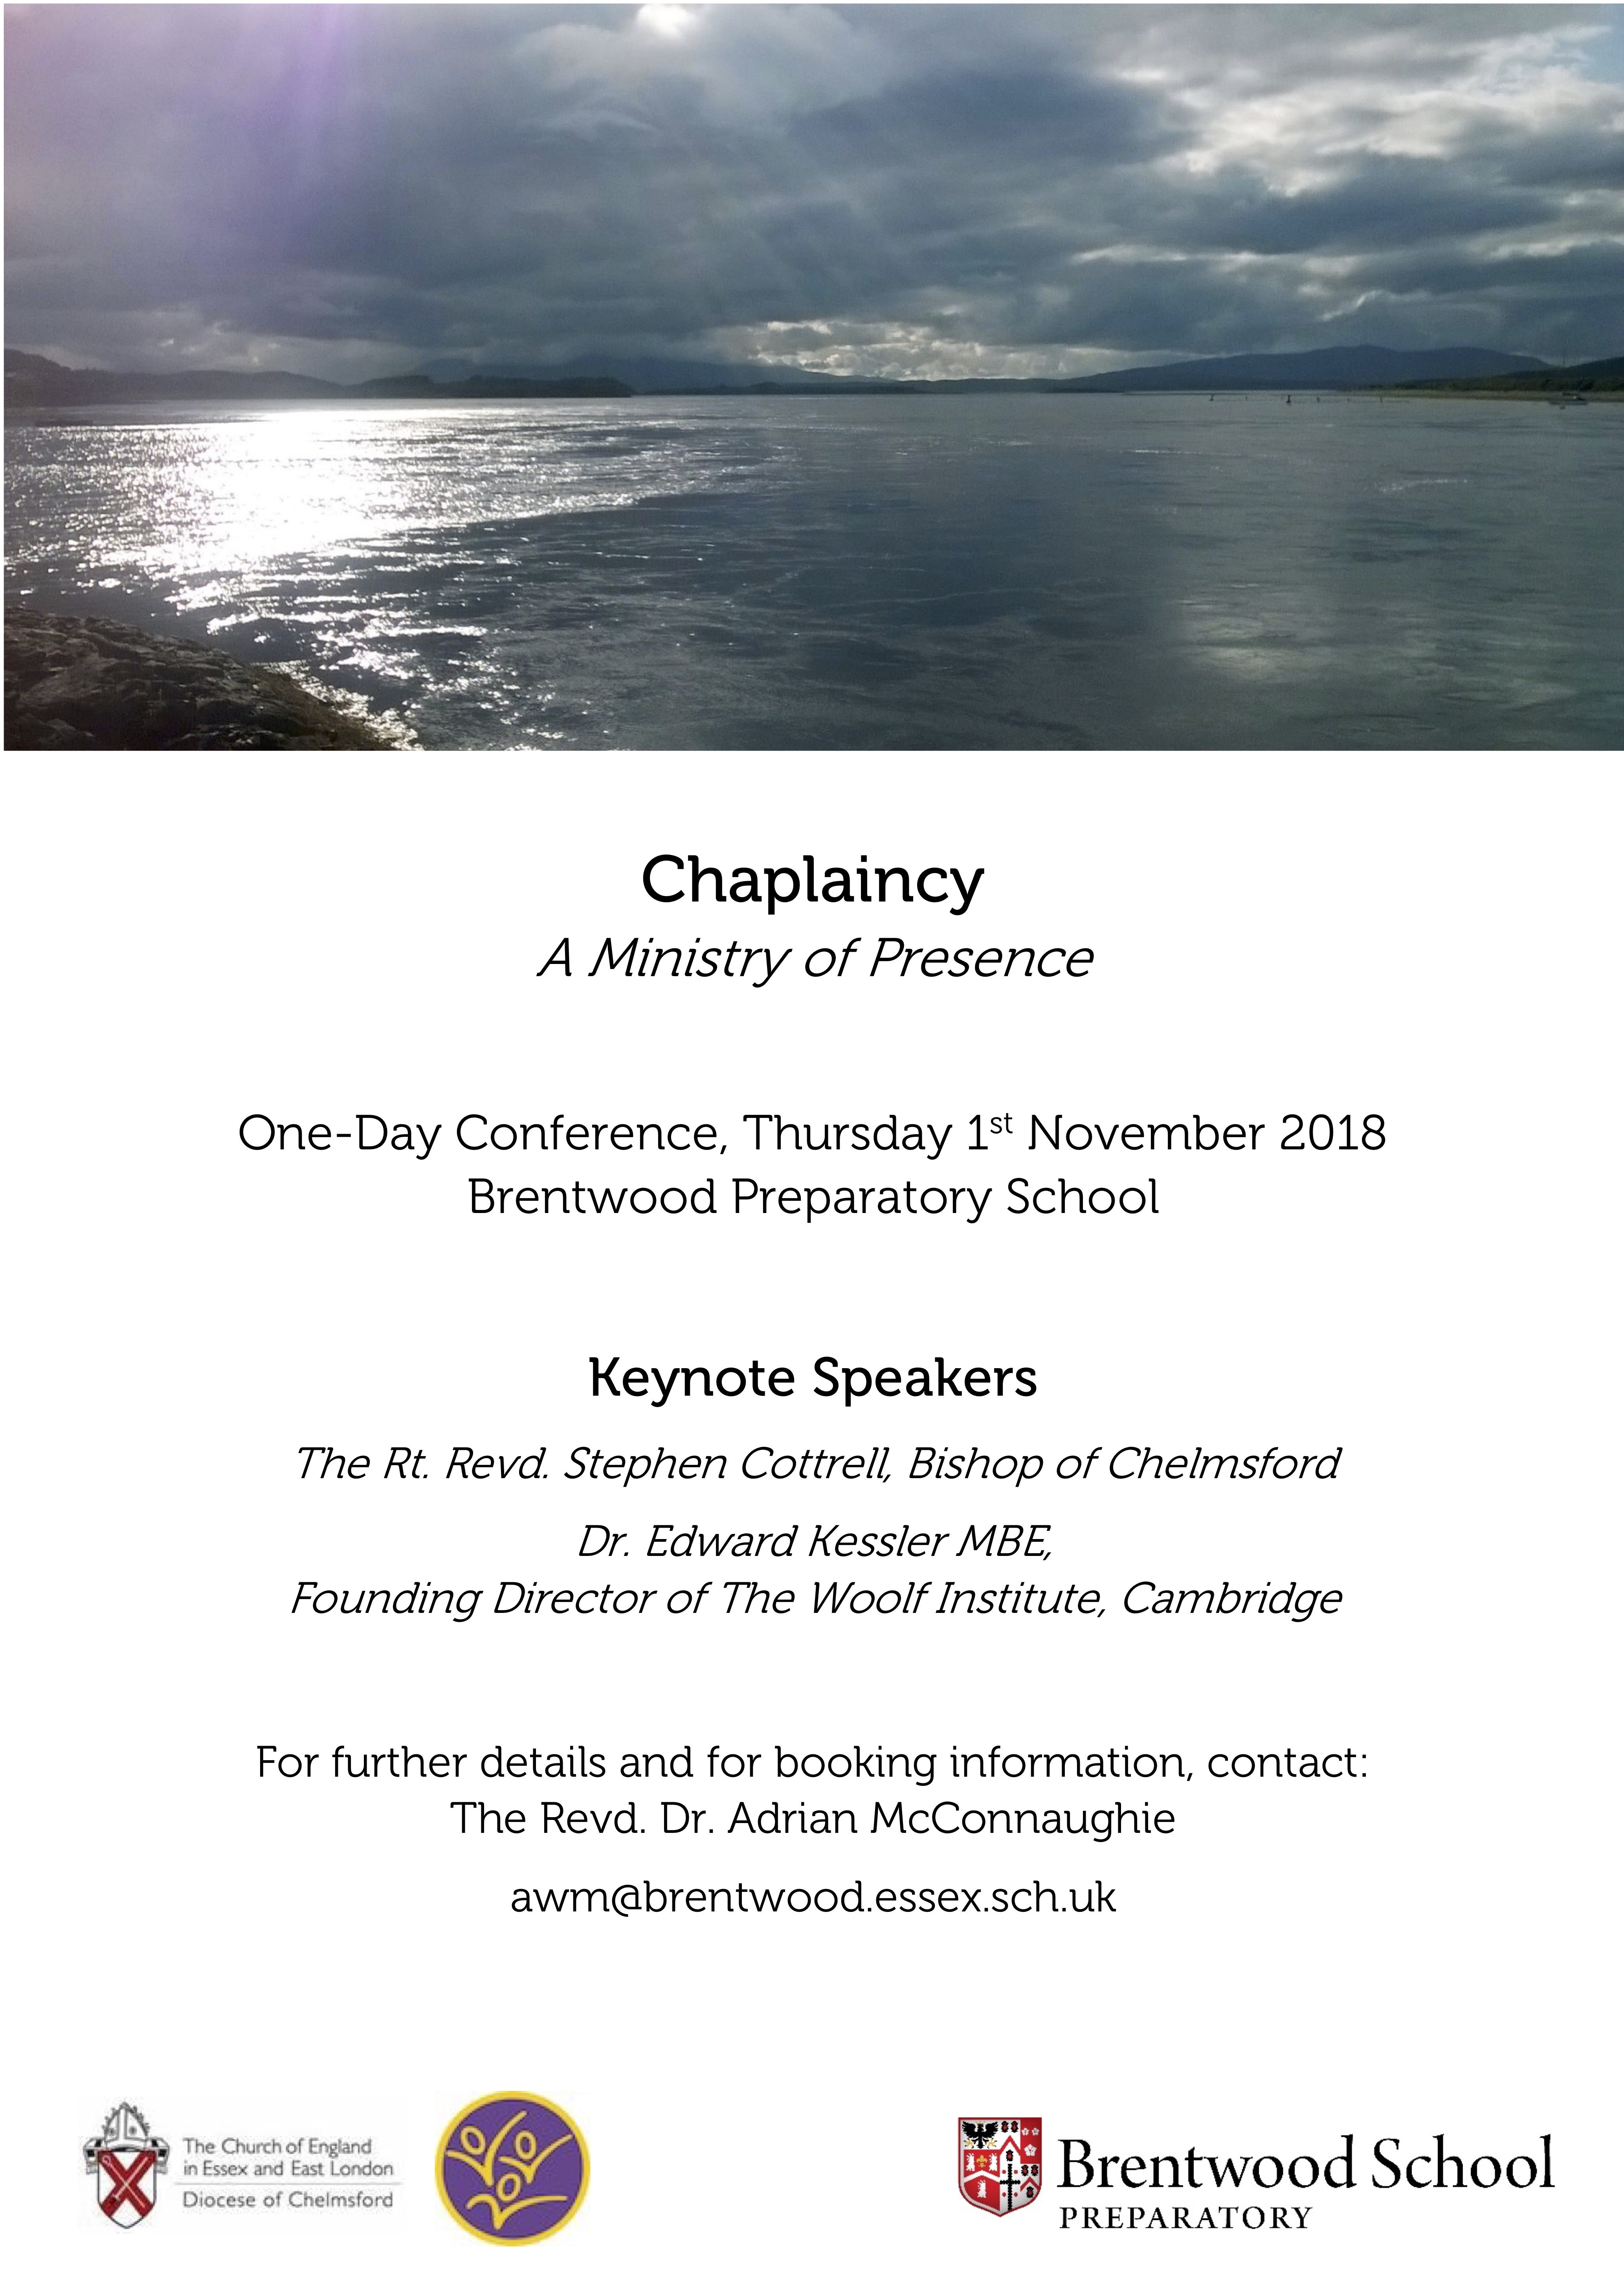 Chaplaincy - A Ministry of Presence - Day Conference